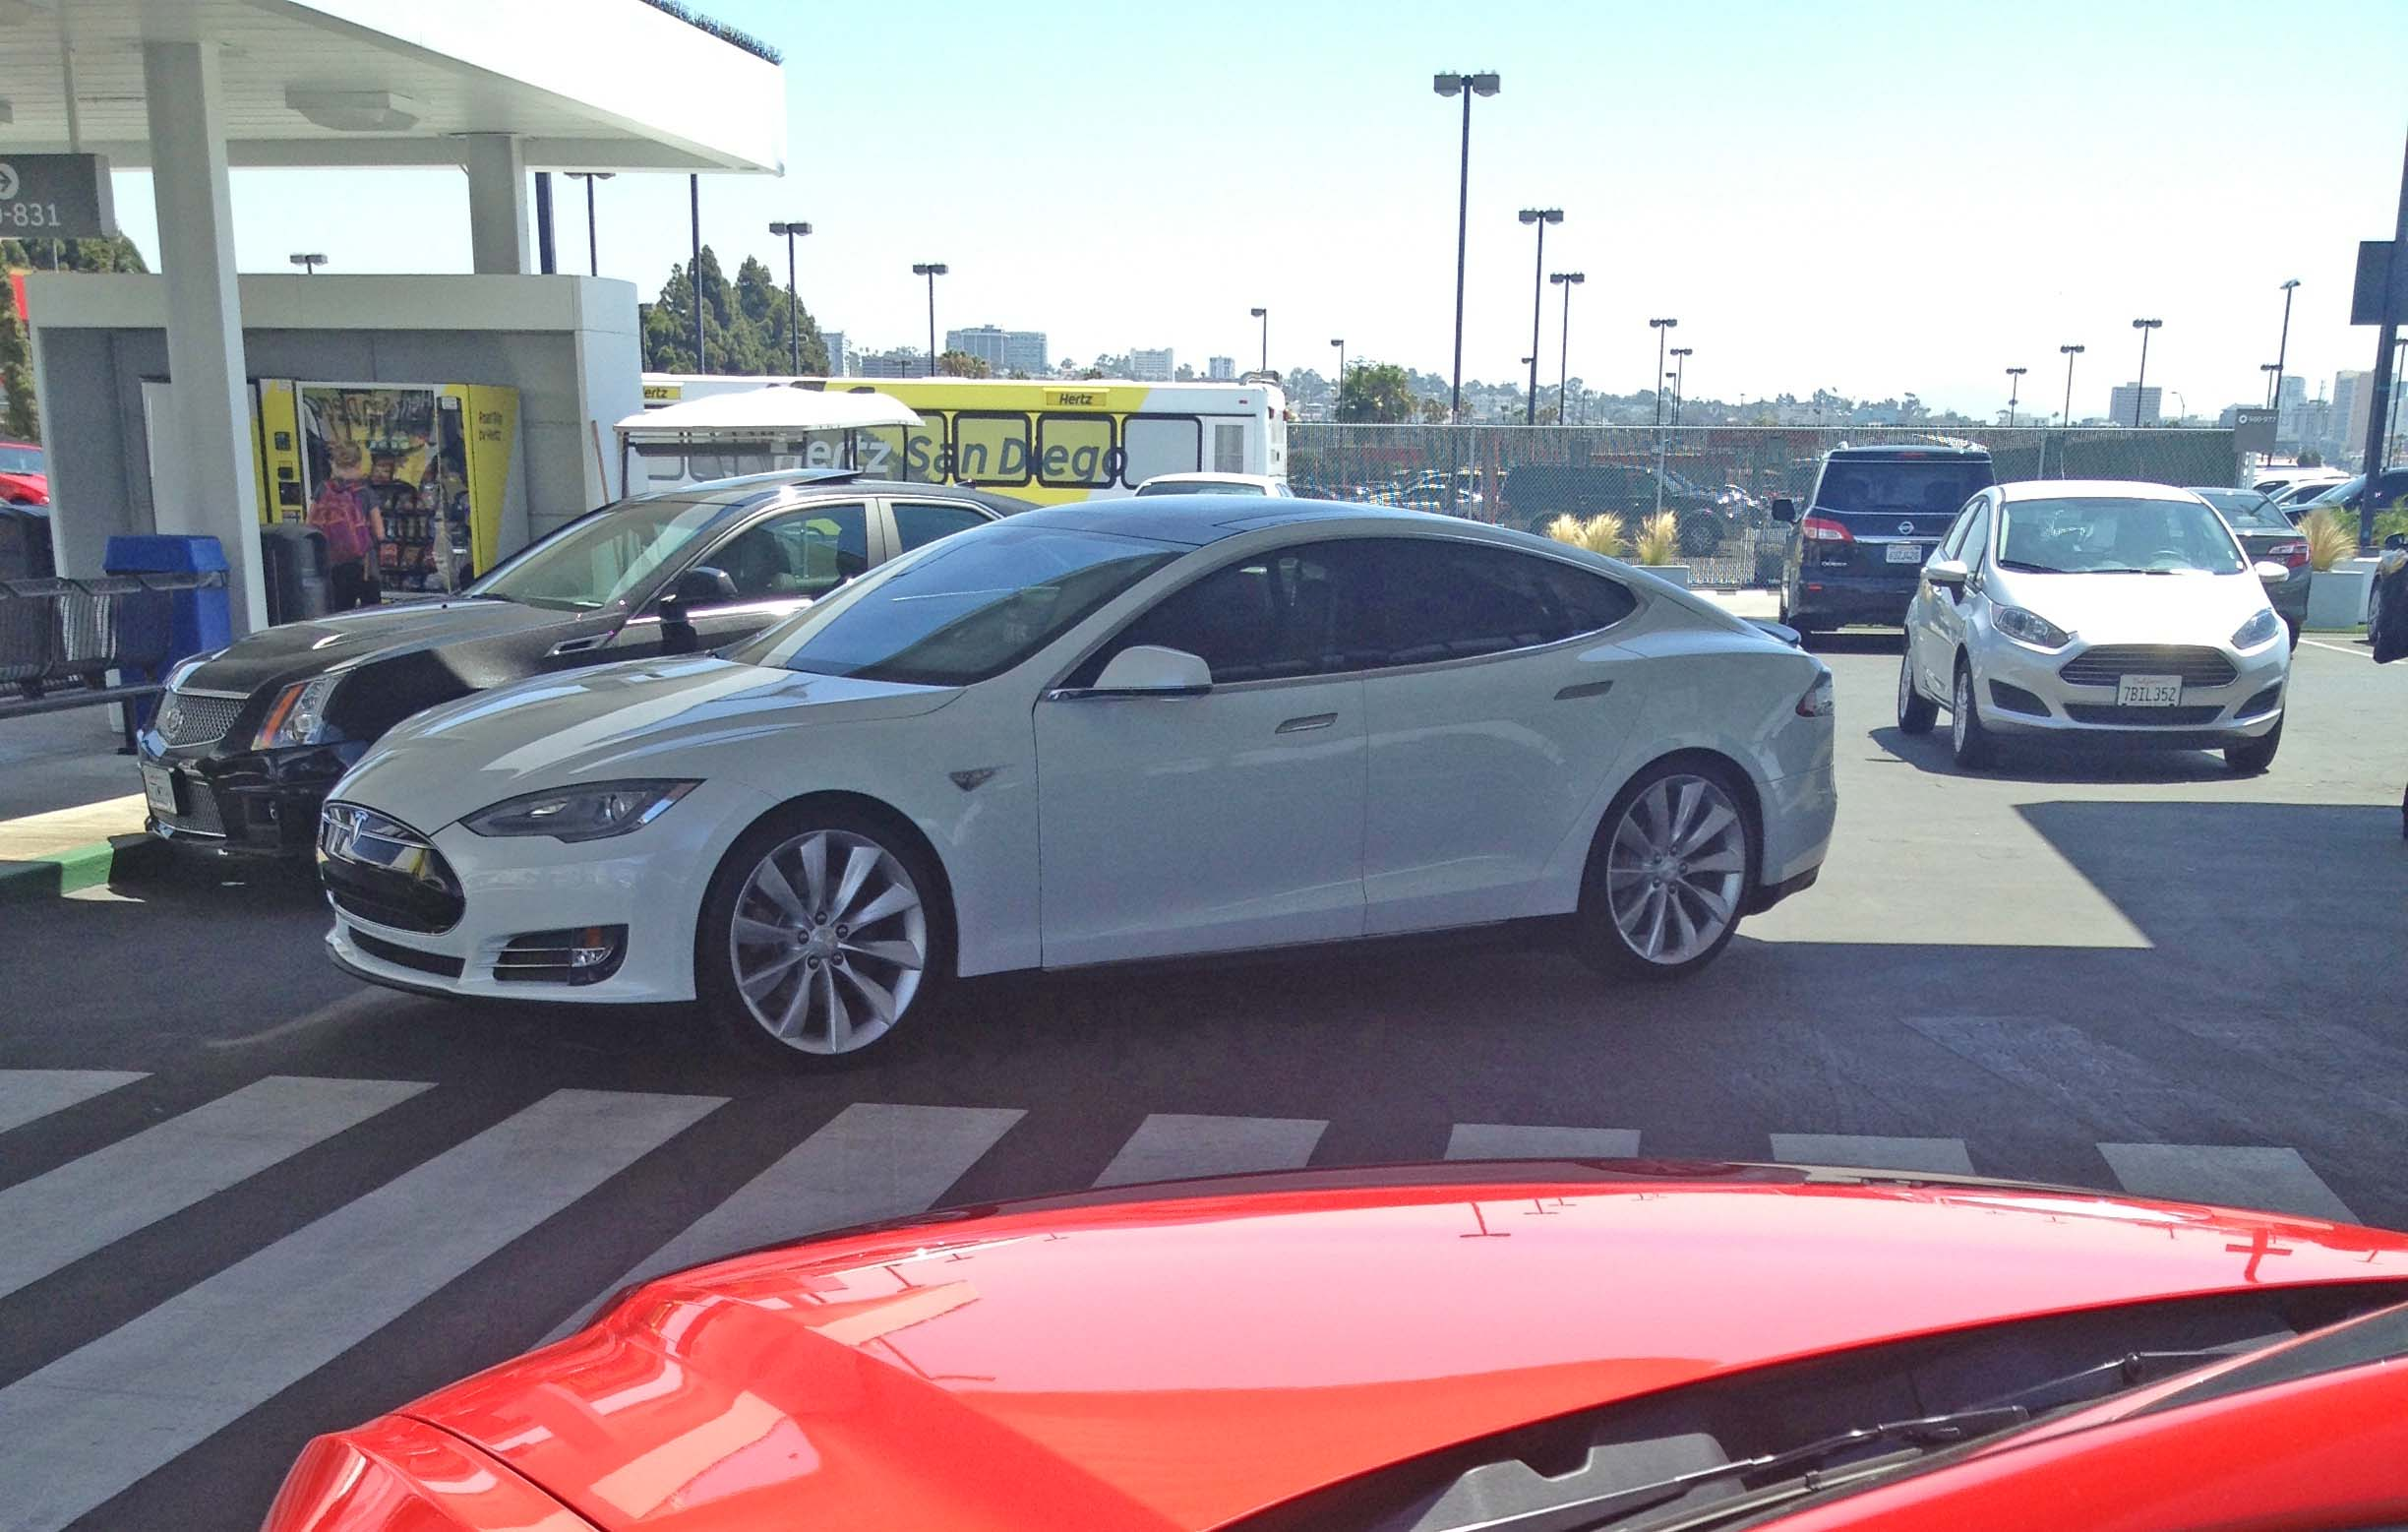 Tesla-Model-S-Rental-Car-Hertz-2